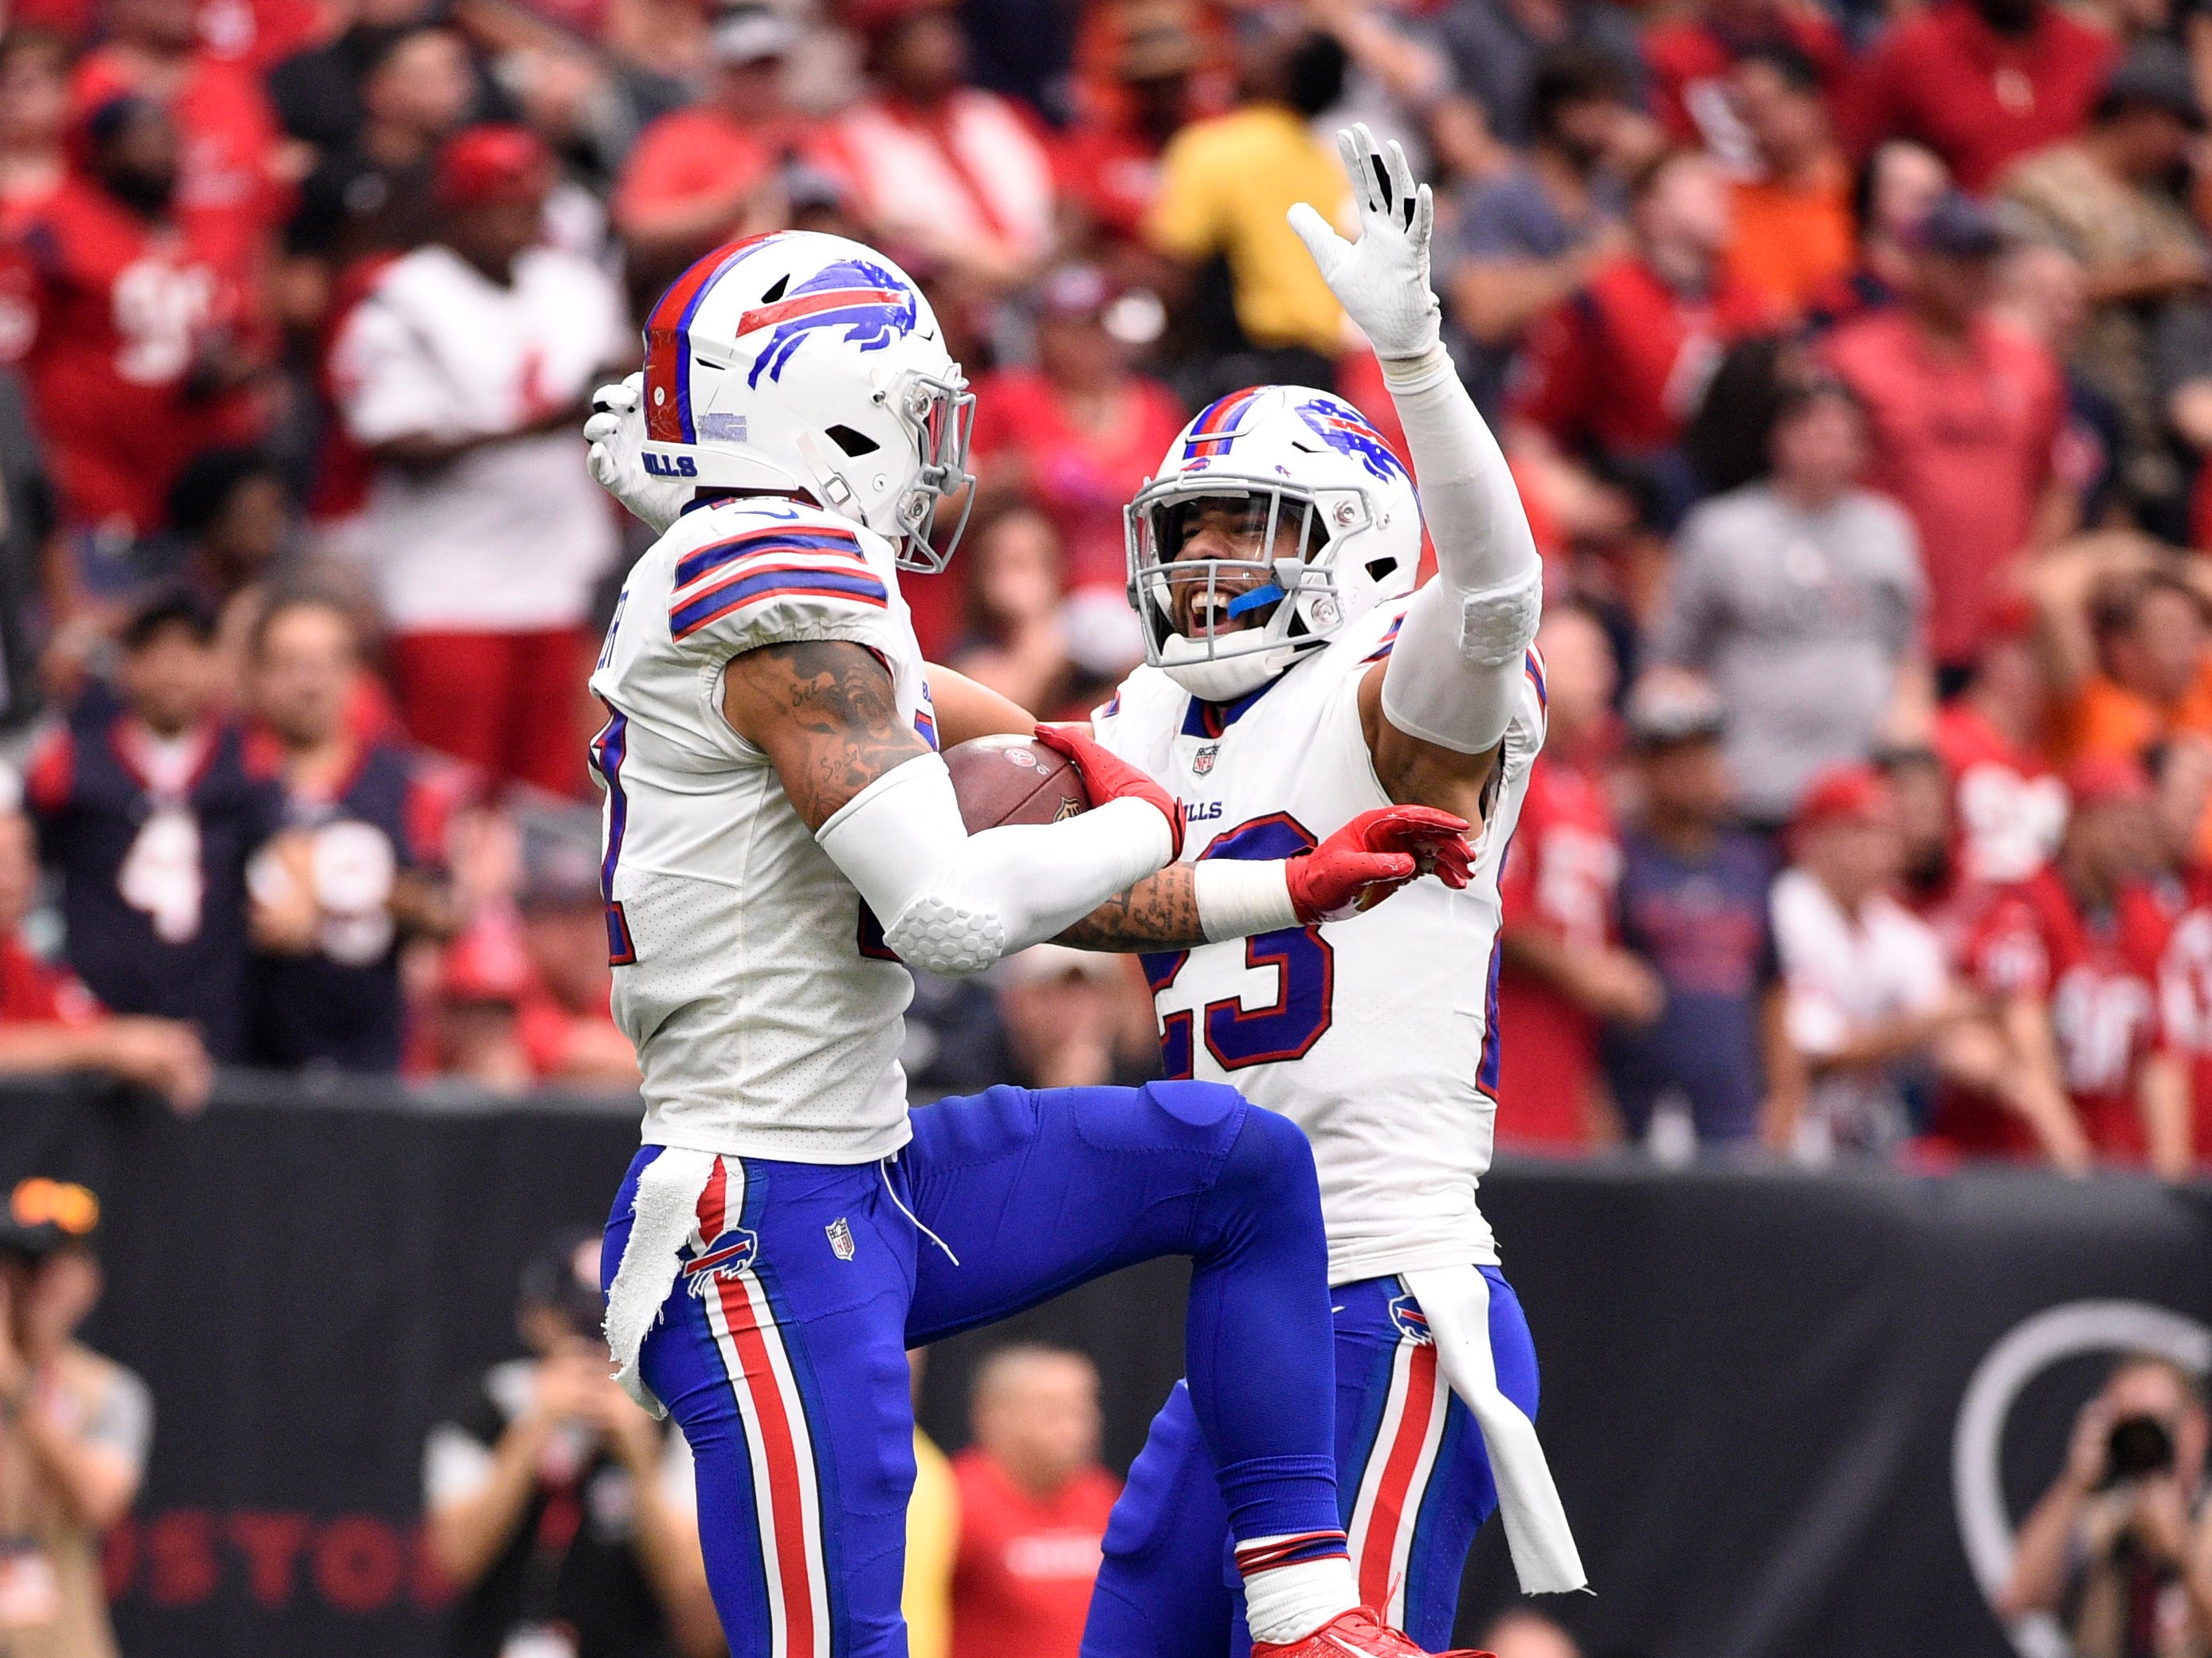 Buffalo Bills free safety Jordan Poyer, left, celebrates his interception with teammate Micah Hyde, right, during the first half of an NFL football game, Sunday, Oct. 14, 2018, in Houston. (AP Photo/Eric Christian Smith)